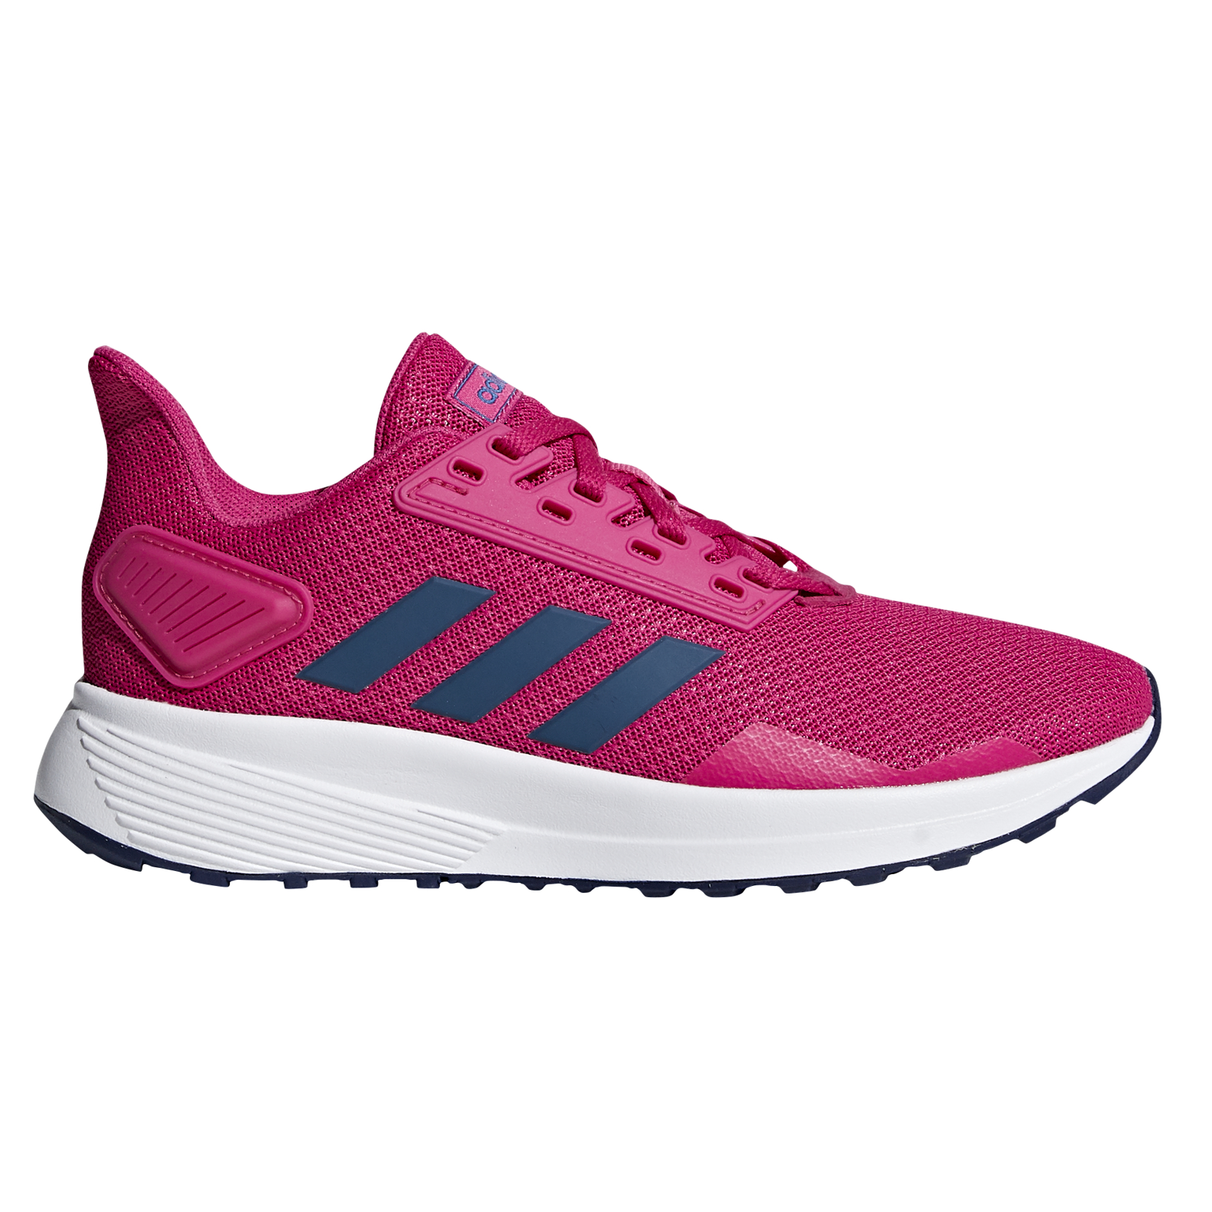 adidas shoes for running